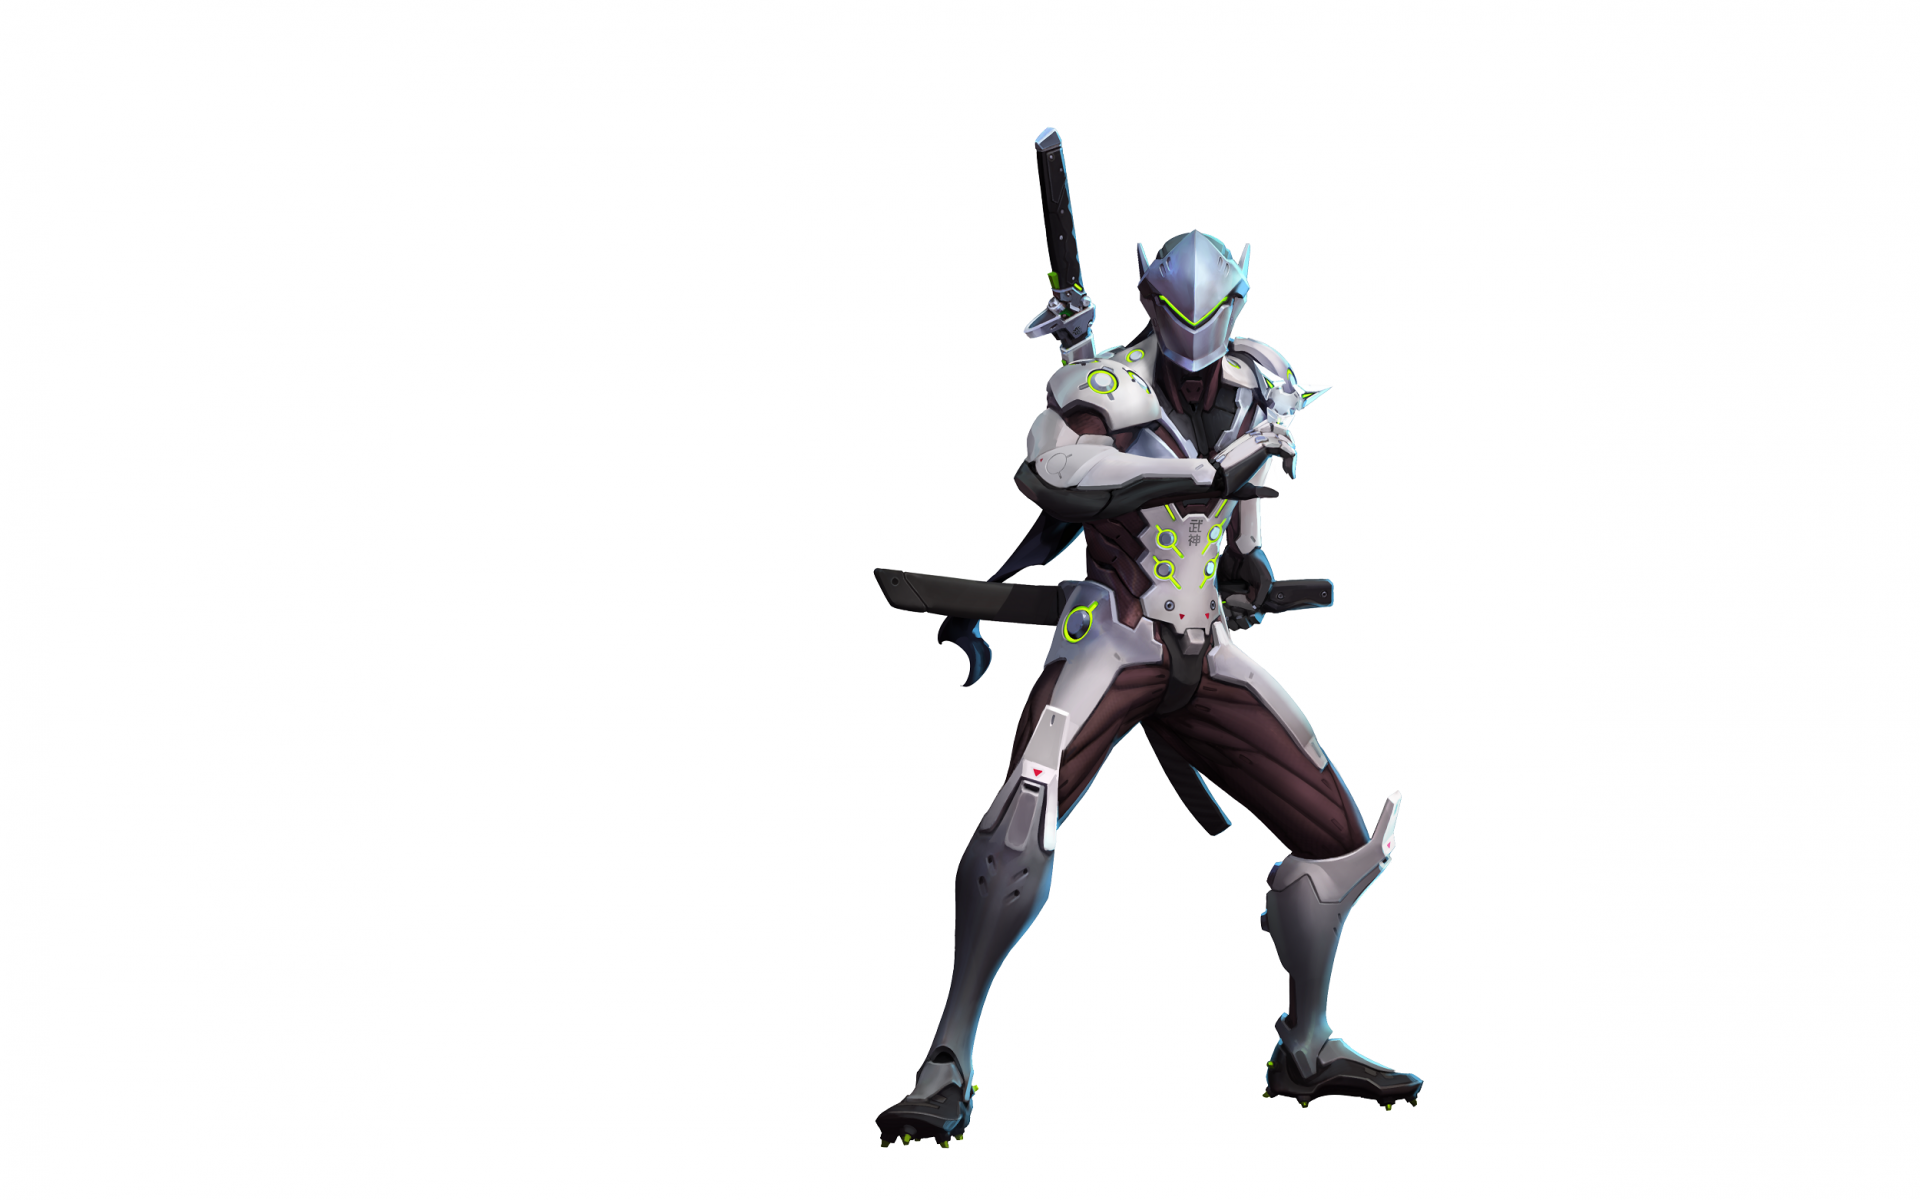 Heroes Of The Storm Genji Slices His Way Into The Nexus Along With The New Battleground Hanamura Inven Global Genji is classified as an assassin hero that's highly mobile. heroes of the storm genji slices his